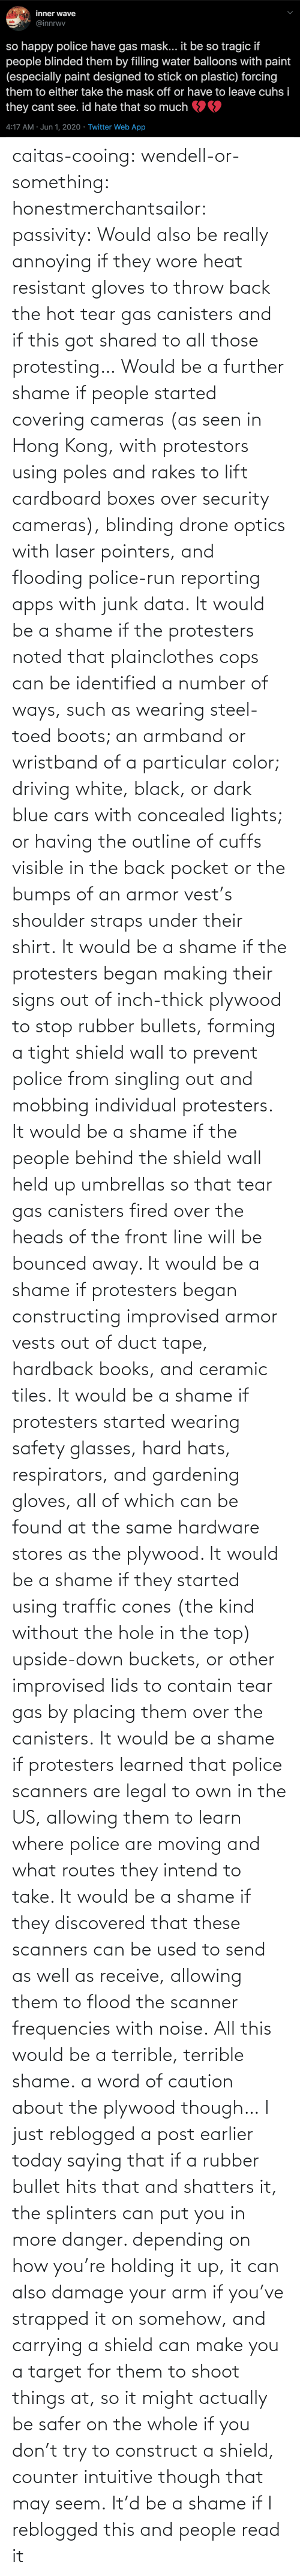 fired: caitas-cooing:  wendell-or-something: honestmerchantsailor:  passivity: Would also be really annoying if they wore heat resistant gloves to throw back the hot tear gas canisters and if this got shared to all those protesting… Would be a further shame if people started covering cameras (as seen in Hong Kong, with protestors using poles and rakes to lift cardboard boxes over security cameras), blinding drone optics with laser pointers, and flooding police-run reporting apps with junk data. It would be a shame if the protesters noted that plainclothes cops can be identified a number of ways, such as wearing steel-toed boots; an armband or wristband of a particular color; driving white, black, or dark blue cars with concealed lights; or having the outline of cuffs visible in the back pocket or the bumps of an armor vest's shoulder straps under their shirt. It would be a shame if the protesters began making their signs out of inch-thick plywood to stop rubber bullets, forming a tight shield wall to prevent police from singling out and mobbing individual protesters. It would be a shame if the people behind the shield wall held up umbrellas so that tear gas canisters fired over the heads of the front line will be bounced away. It would be a shame if protesters began constructing improvised armor vests out of duct tape, hardback books, and ceramic tiles. It would be a shame if protesters started wearing safety glasses, hard hats, respirators, and gardening gloves, all of which can be found at the same hardware stores as the plywood. It would be a shame if they started using traffic cones (the kind without the hole in the top) upside-down buckets, or other improvised lids to contain tear gas by placing them over the canisters. It would be a shame if protesters learned that police scanners are legal to own in the US, allowing them to learn where police are moving and what routes they intend to take. It would be a shame if they discovered that these scanners can be used to send as well as receive, allowing them to flood the scanner frequencies with noise. All this would be a terrible, terrible shame.    a word of caution about the plywood though… I just reblogged a post earlier today saying that if a rubber bullet hits that and shatters it, the splinters can put you in more danger. depending on how you're holding it up, it can also damage your arm if you've strapped it on somehow, and carrying a shield can make you a target for them to shoot things at, so it might actually be safer on the whole if you don't try to construct a shield, counter intuitive though that may seem.    It'd be a shame if I reblogged this and people read it